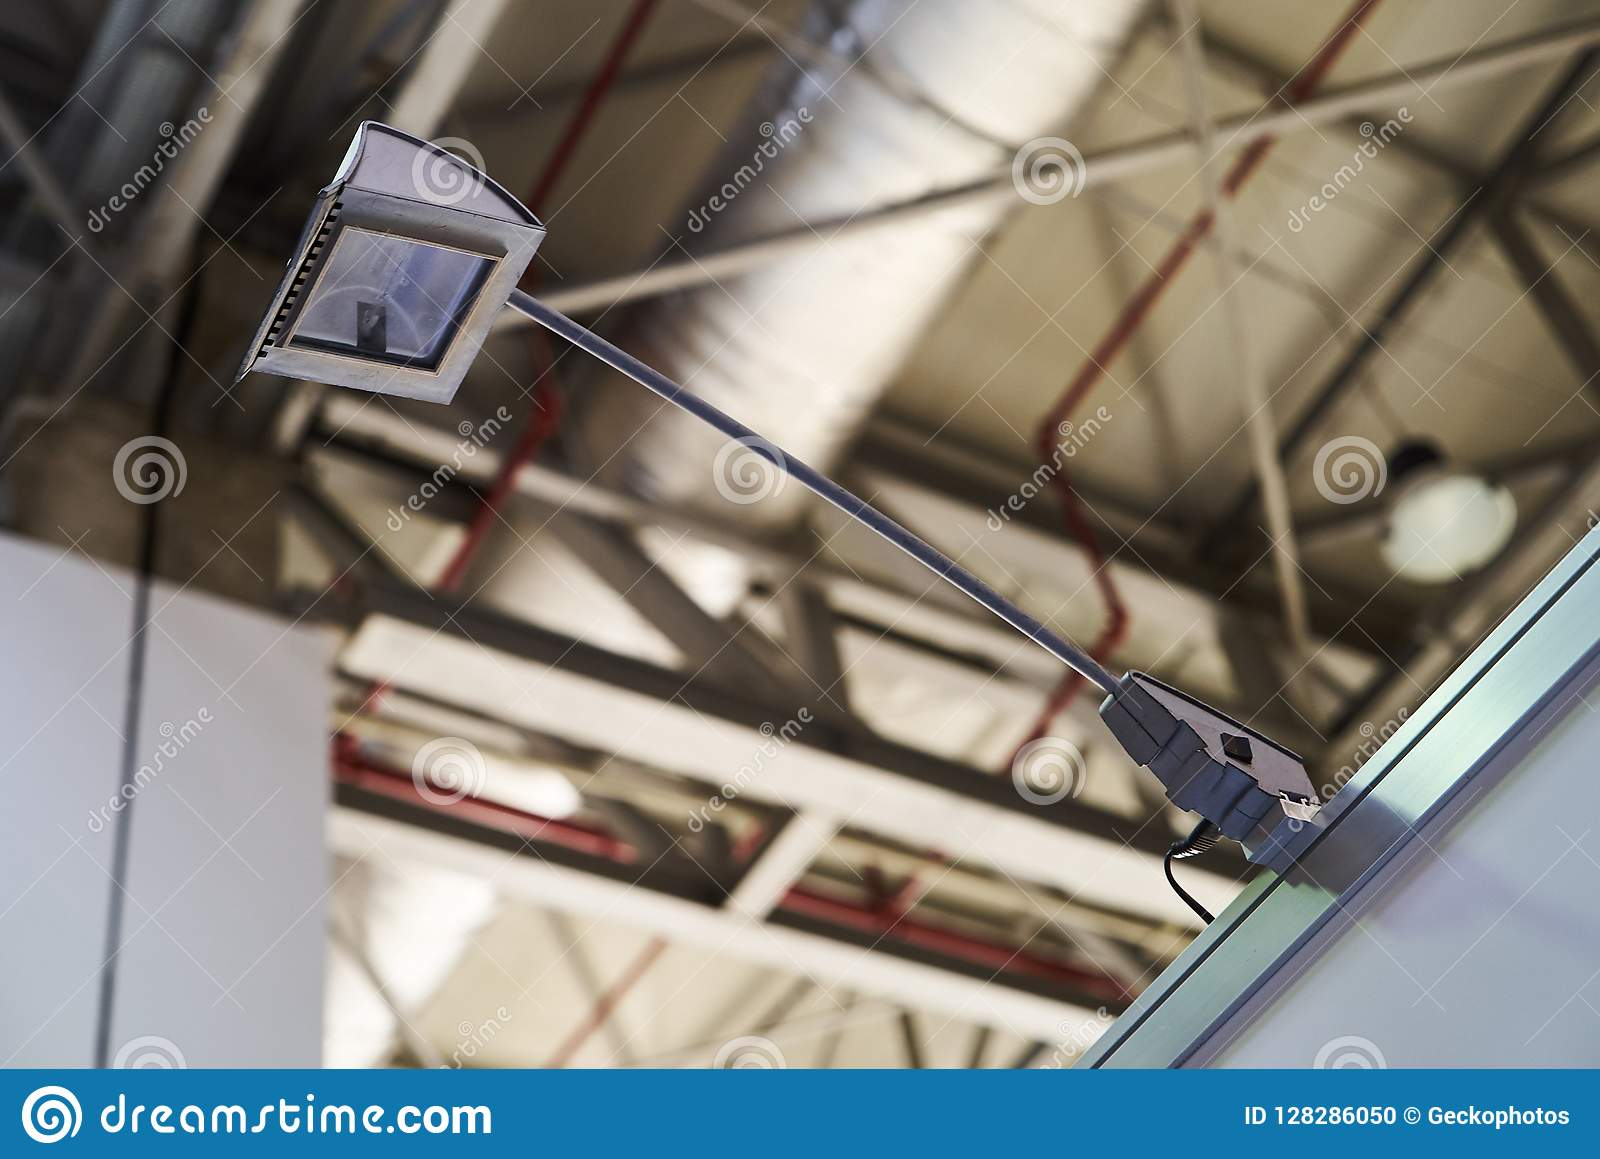 Portable Exhibition Lighting : Portable fixing lamp led lighting in a business centre stock photo